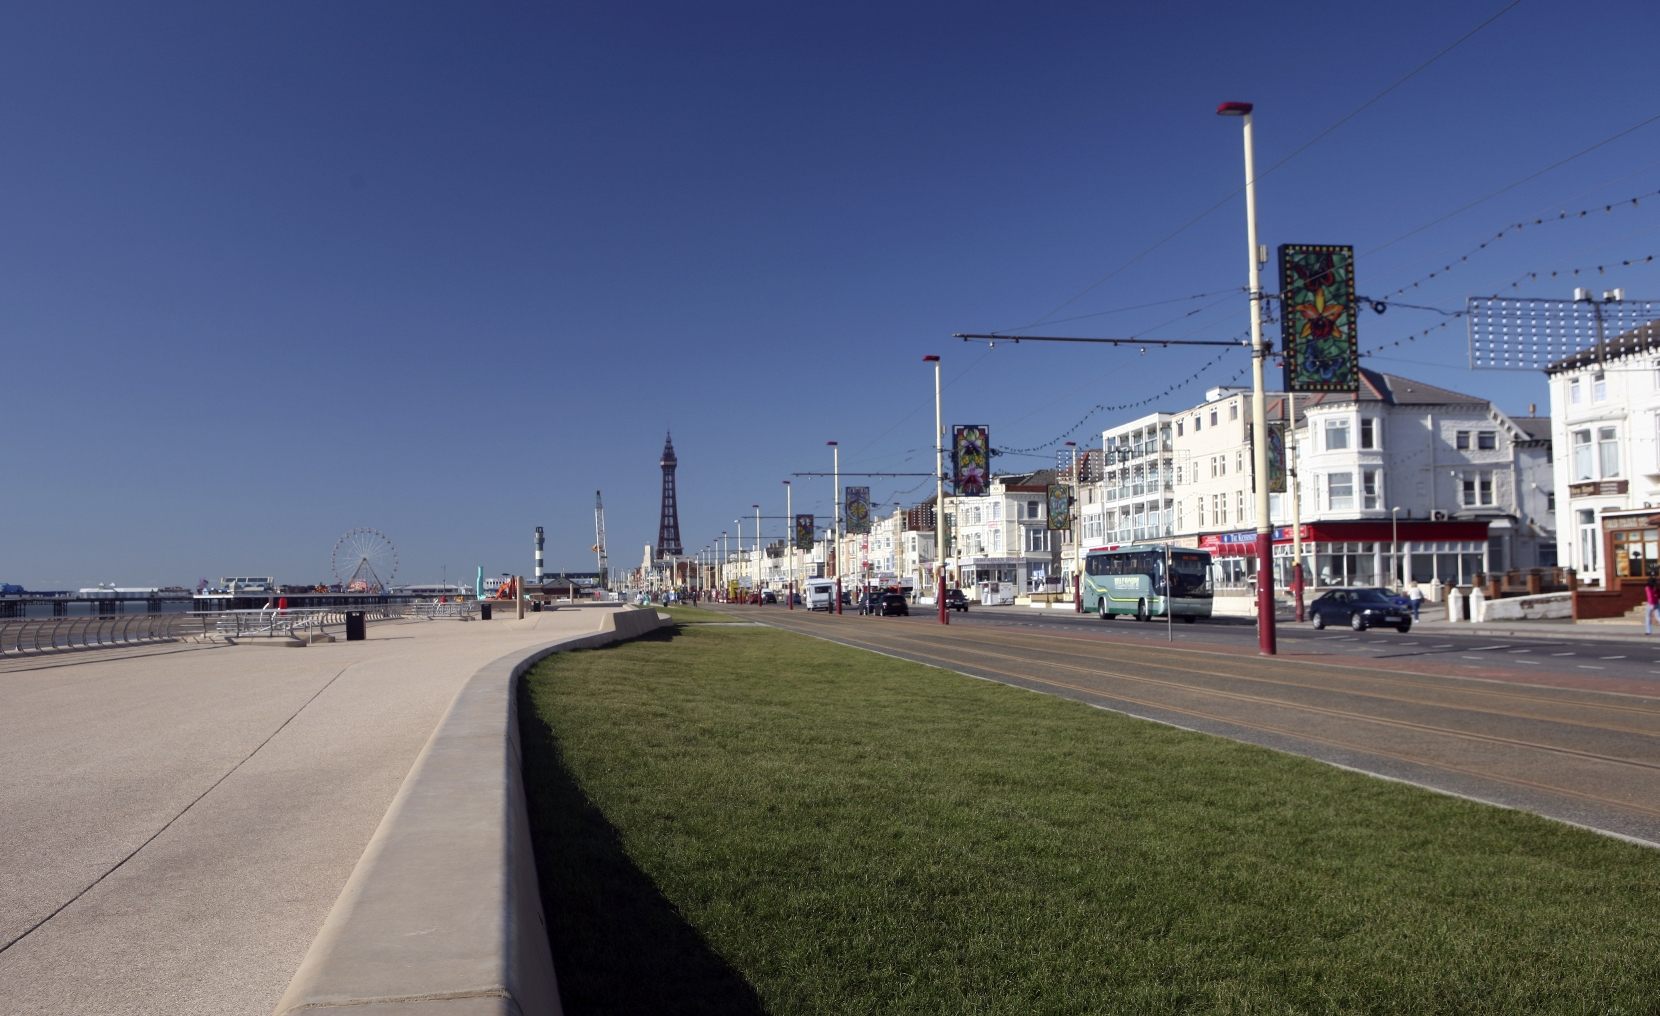 Blackpool Prom showing the Tower